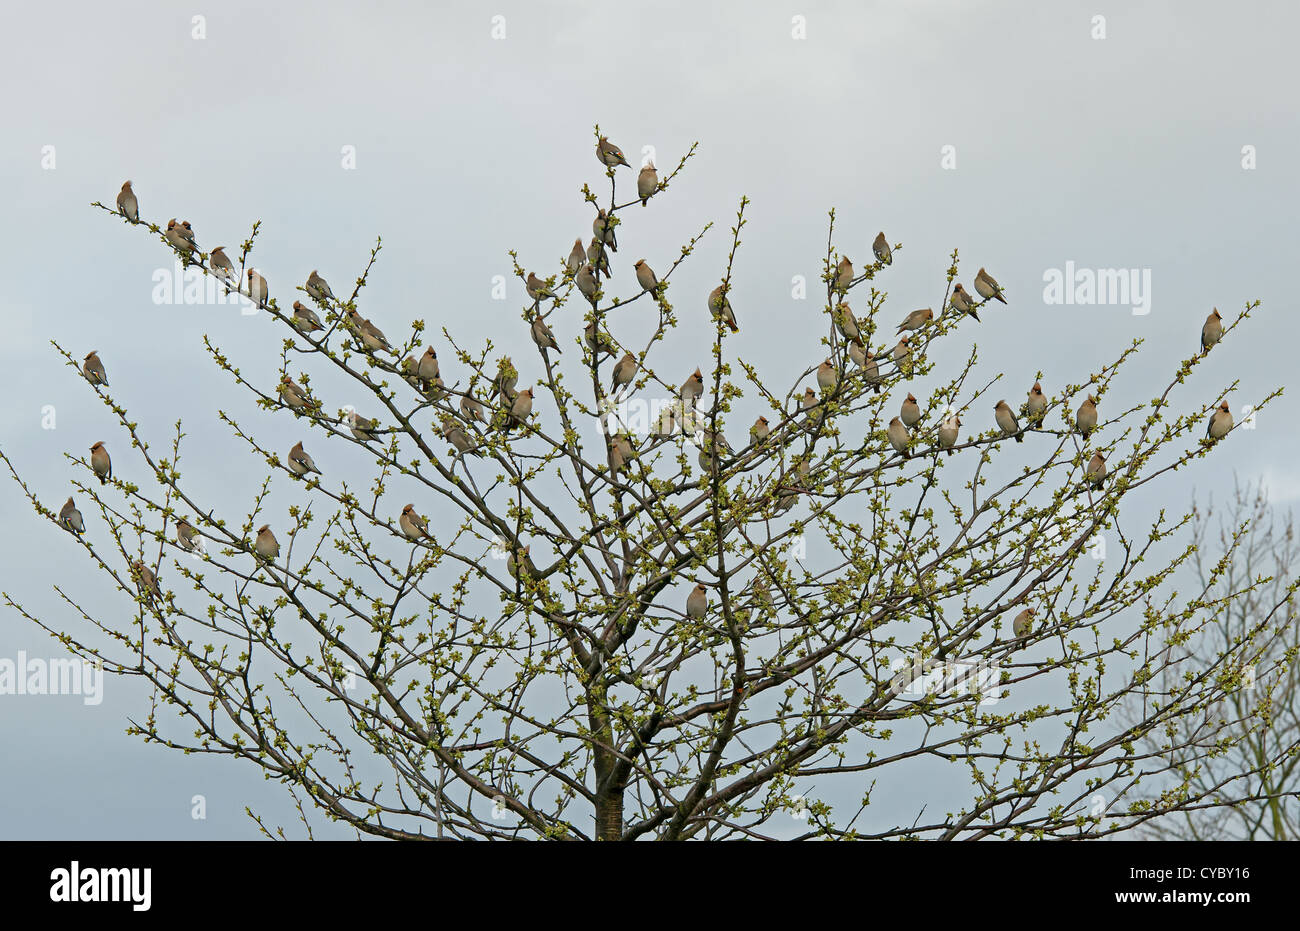 Bohemian Waxwing flock sat in tree early spring in UK - Stock Image